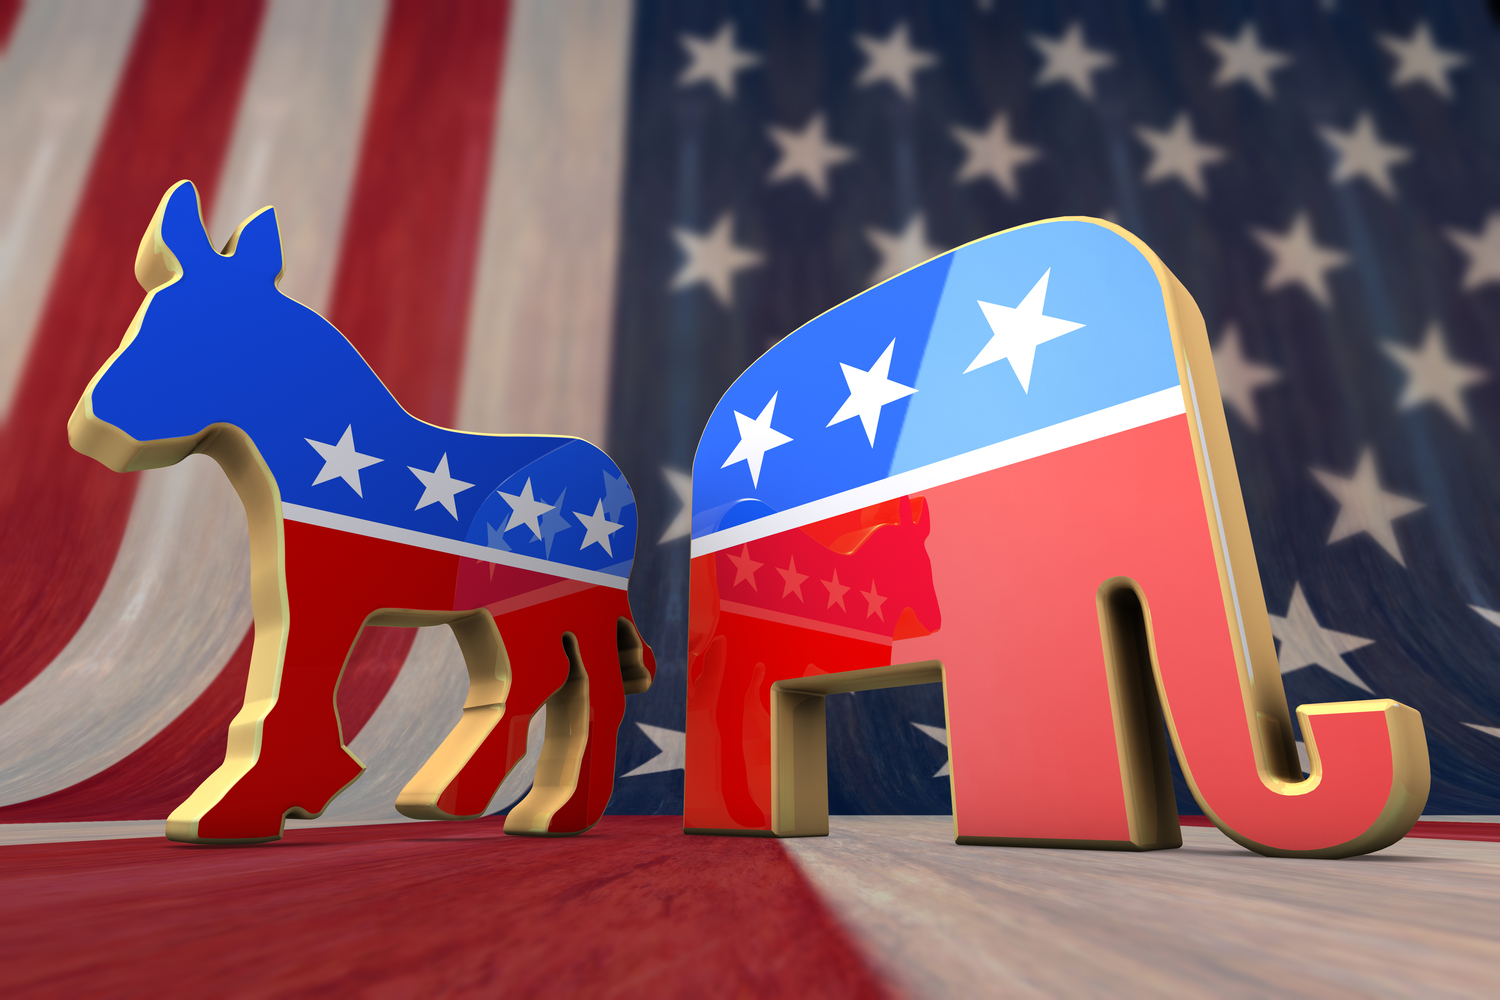 Will the Republicans do better on the mid term elections?